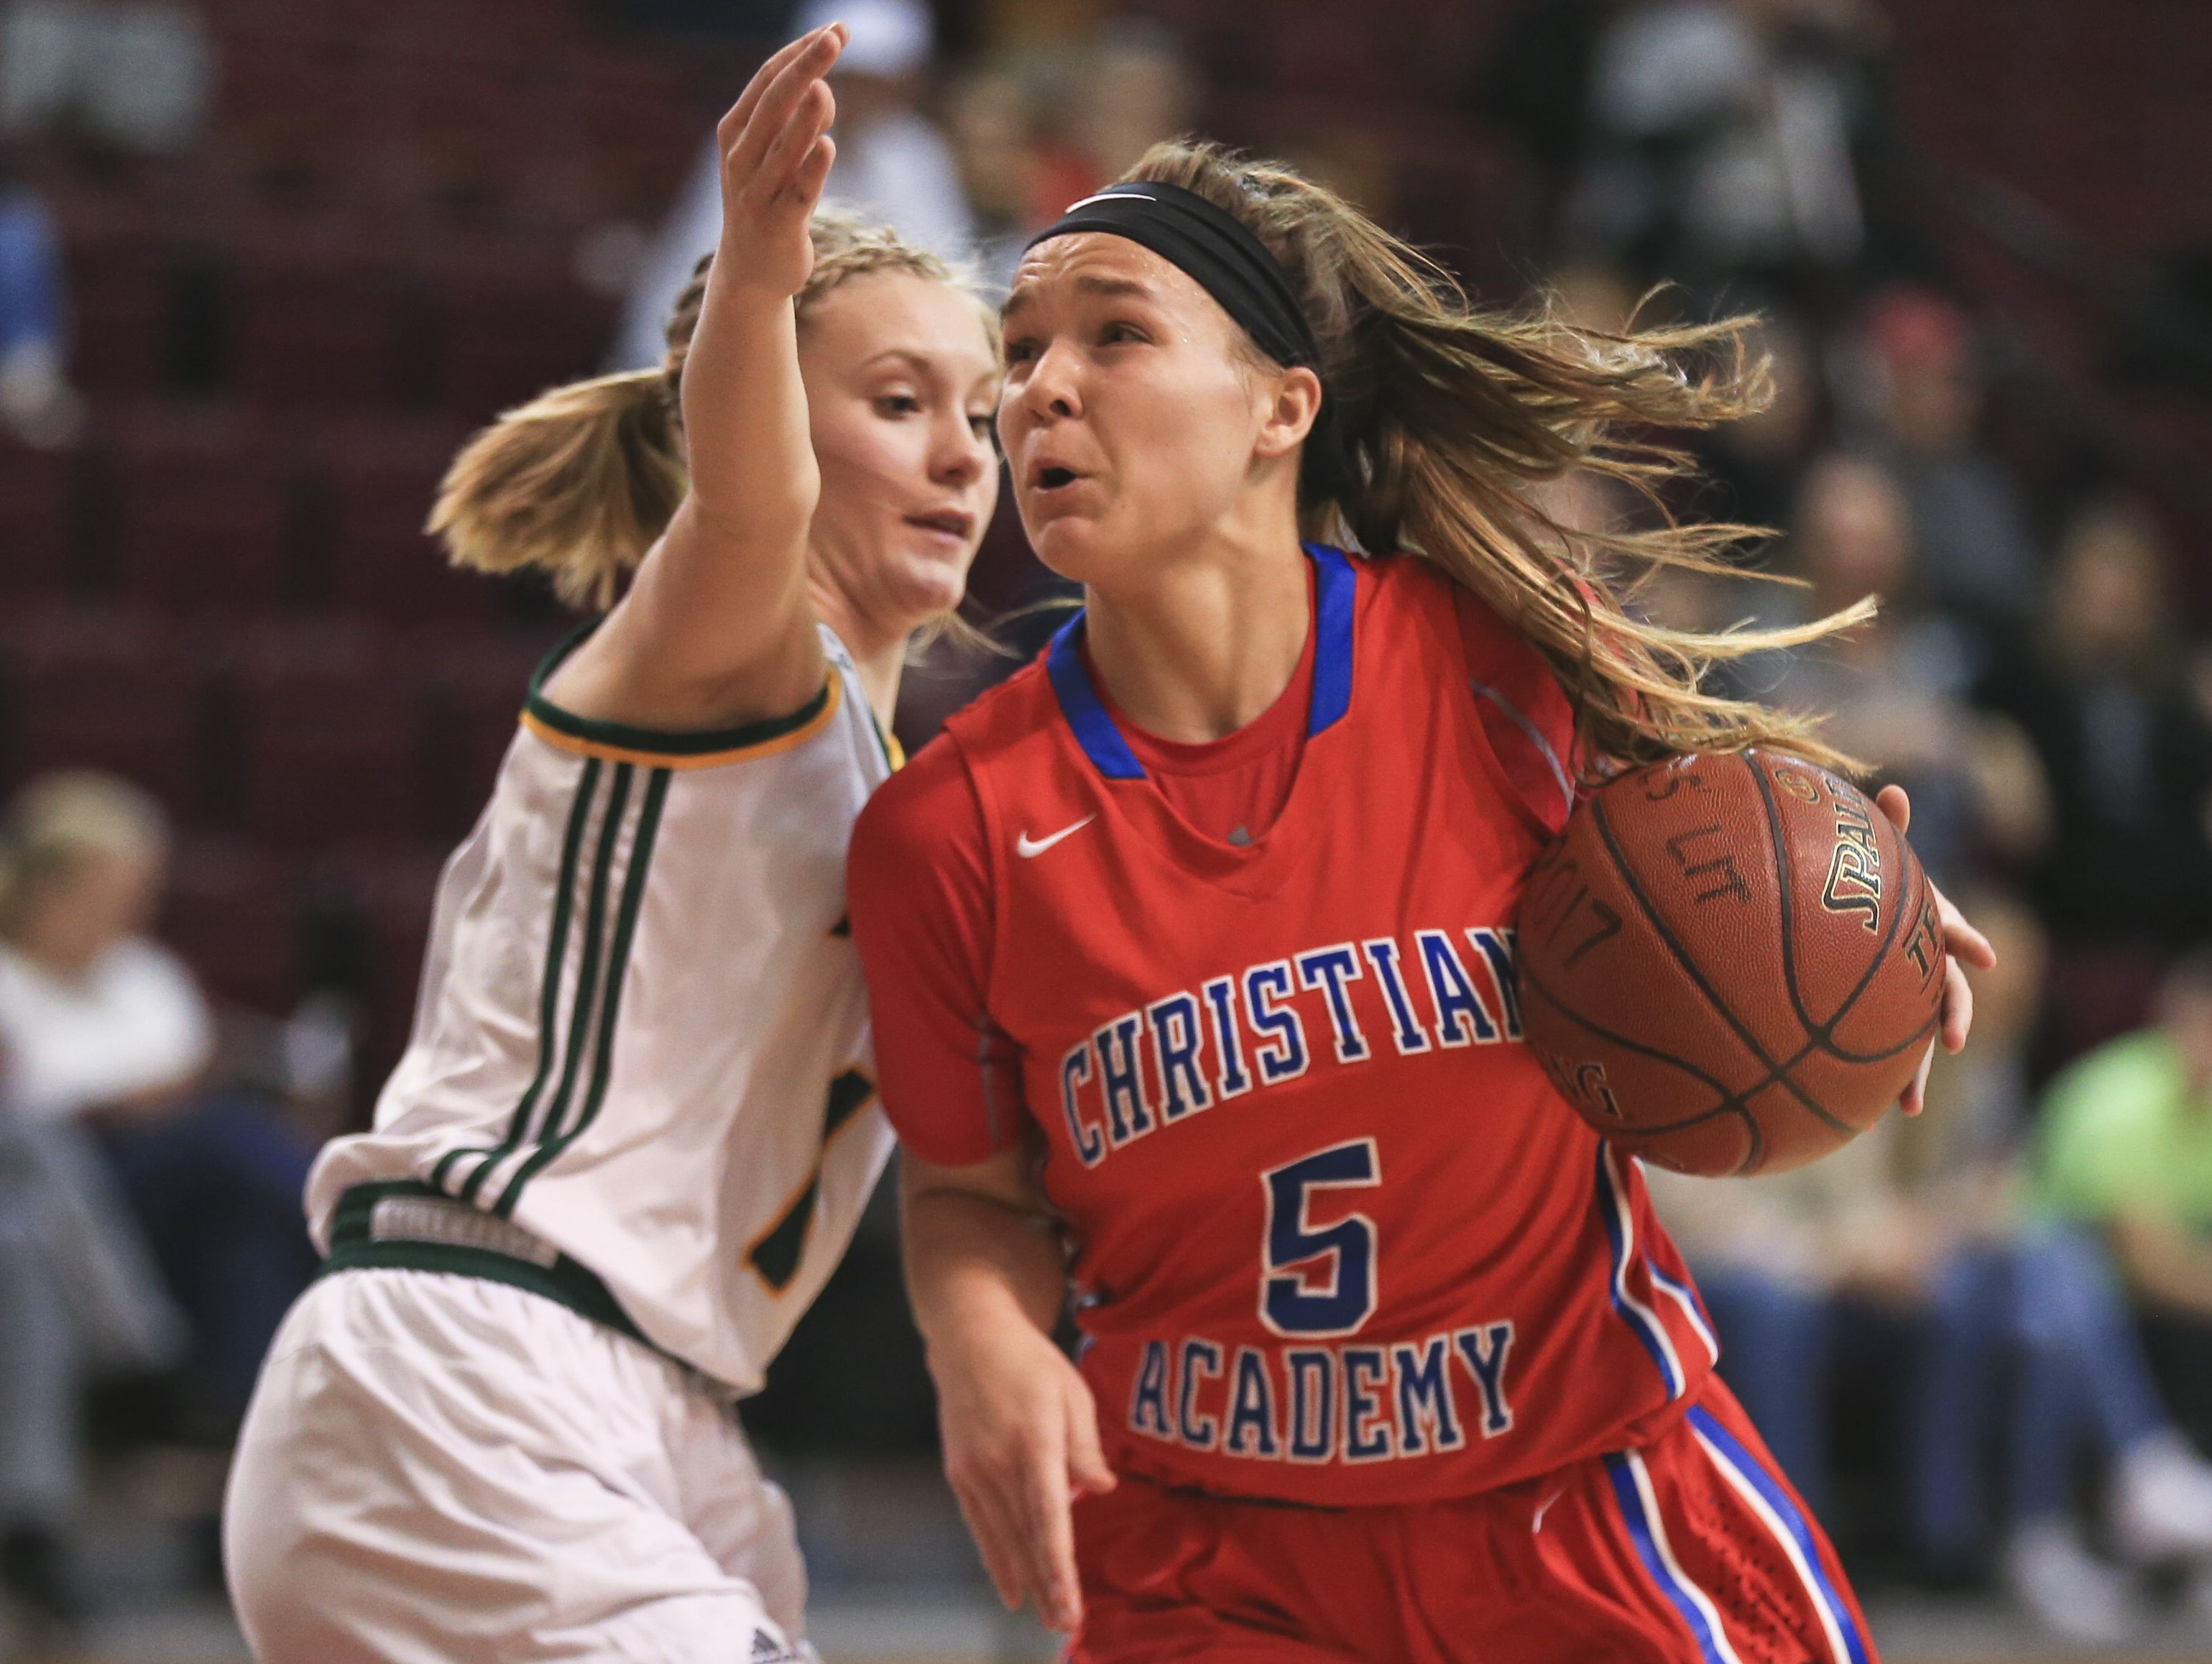 CAL's Emma Wesley drives past North Bullitt's Hailey Free in the first game of the Girls' LIT at Bellarmine University.